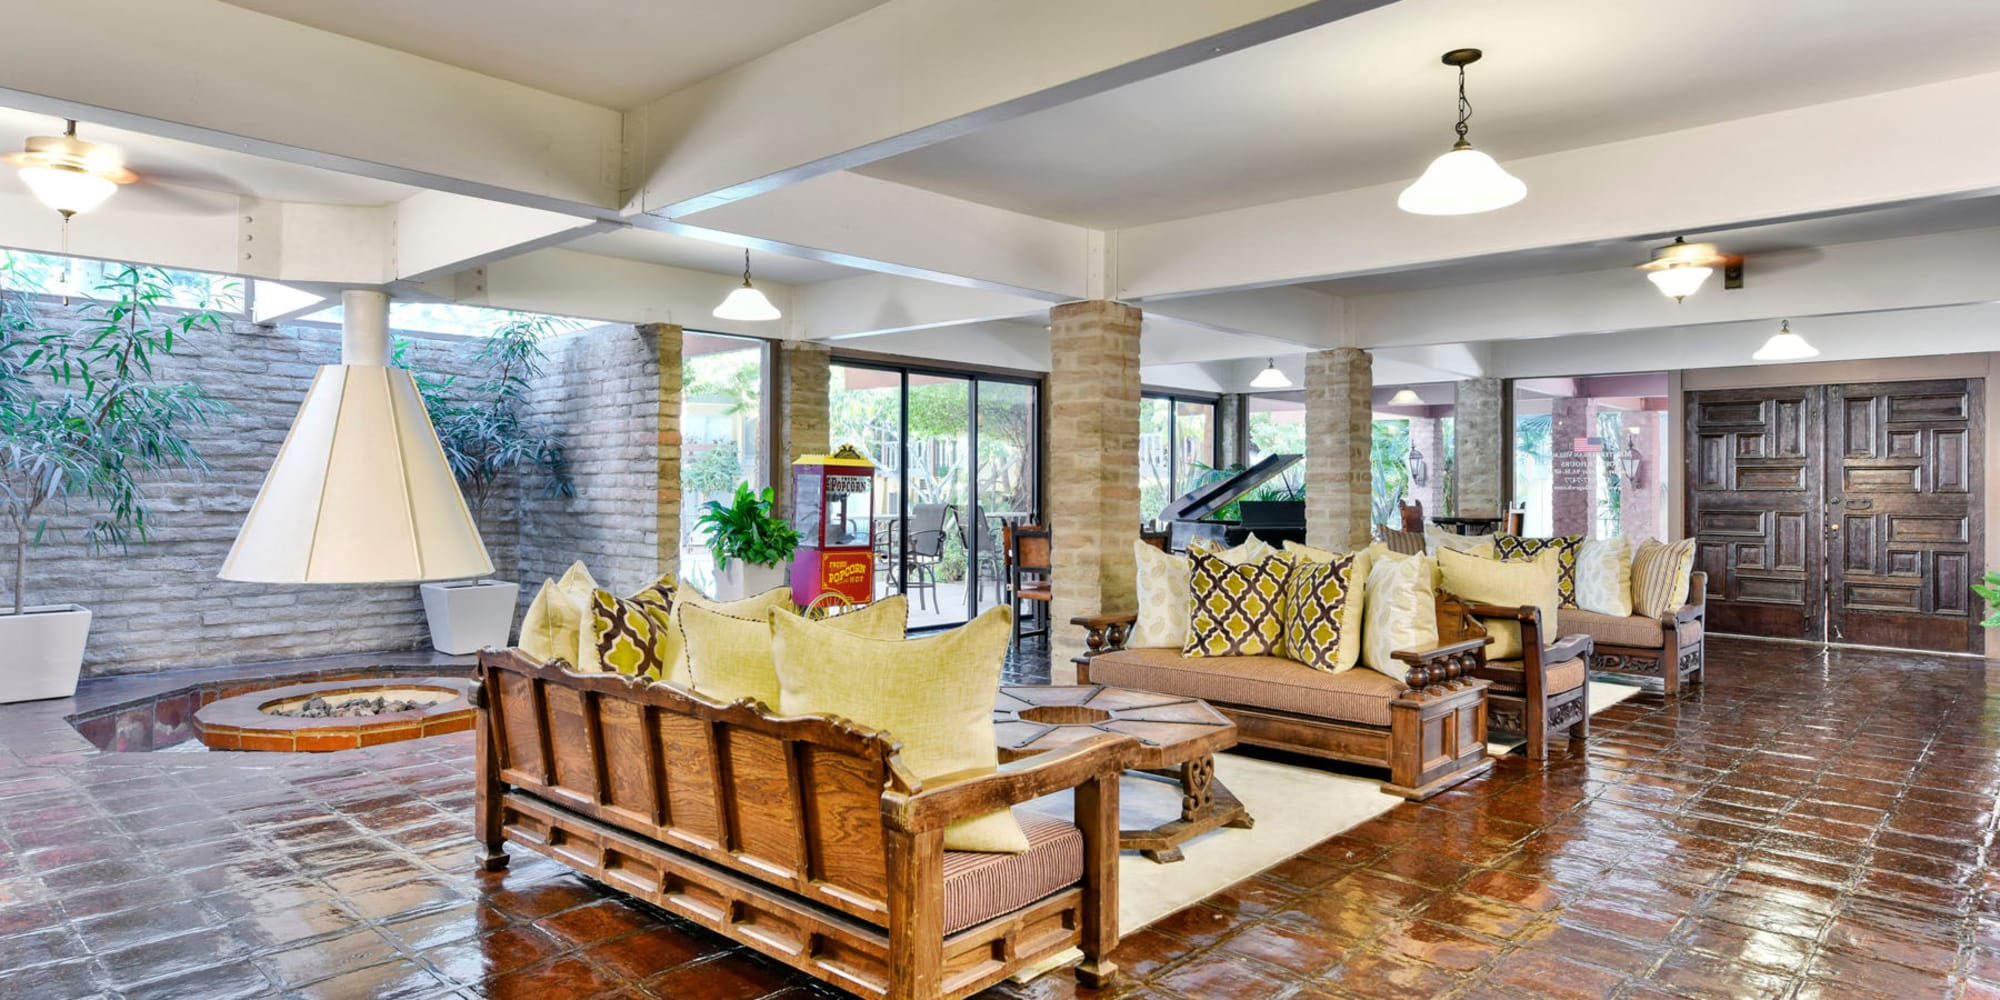 Mediterranean-style decor and a fire pit in the resident clubhouse at Mediterranean Village in West Hollywood, California